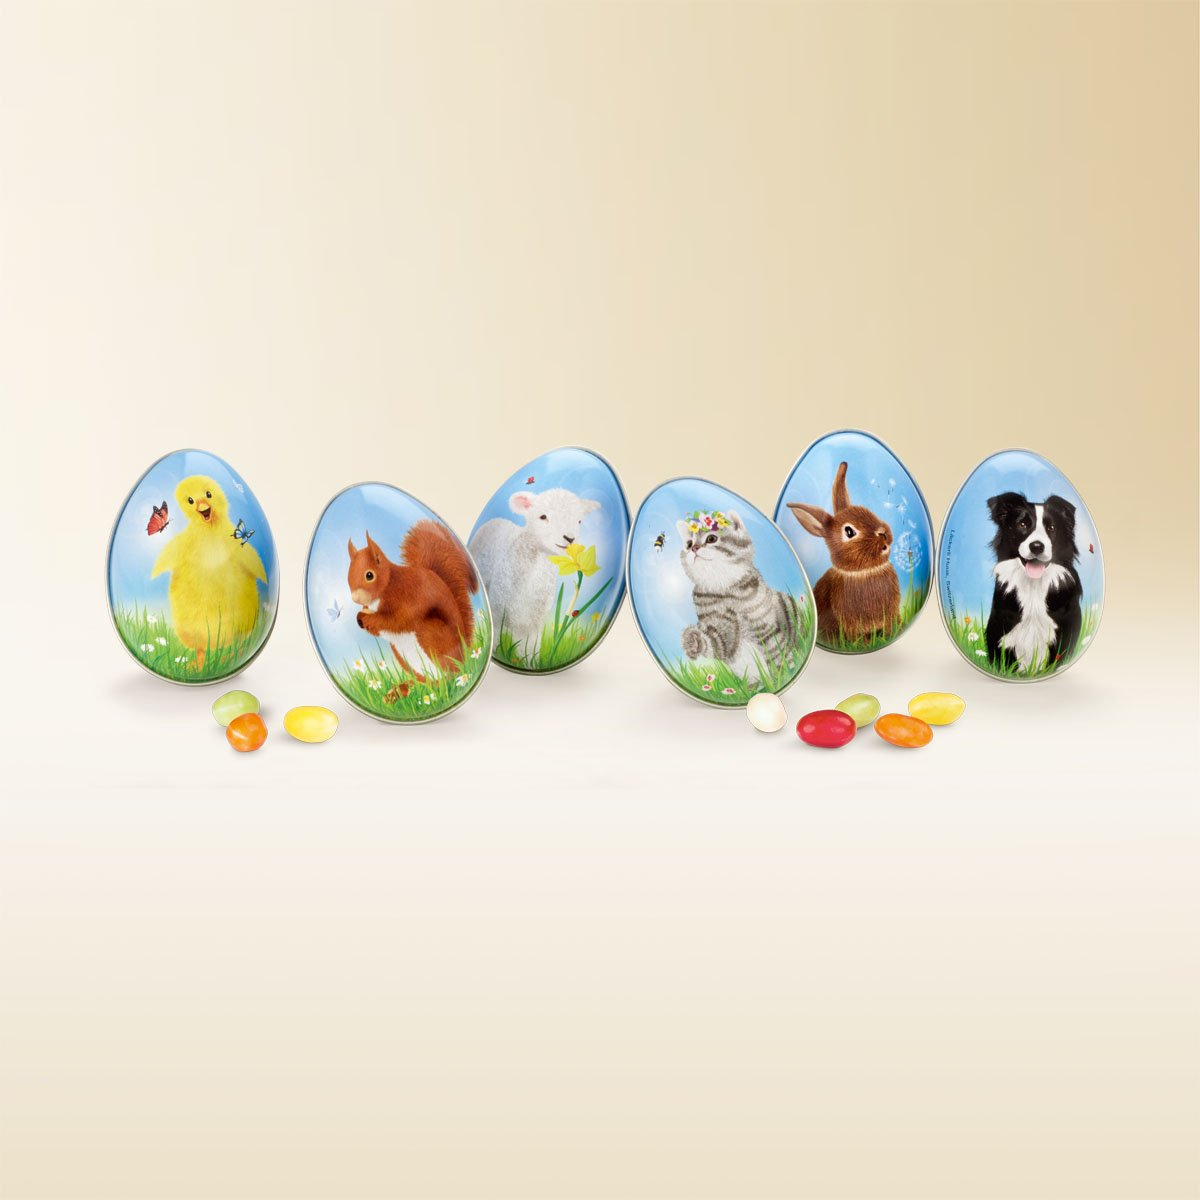 Ornate tin Easter eggs 150g